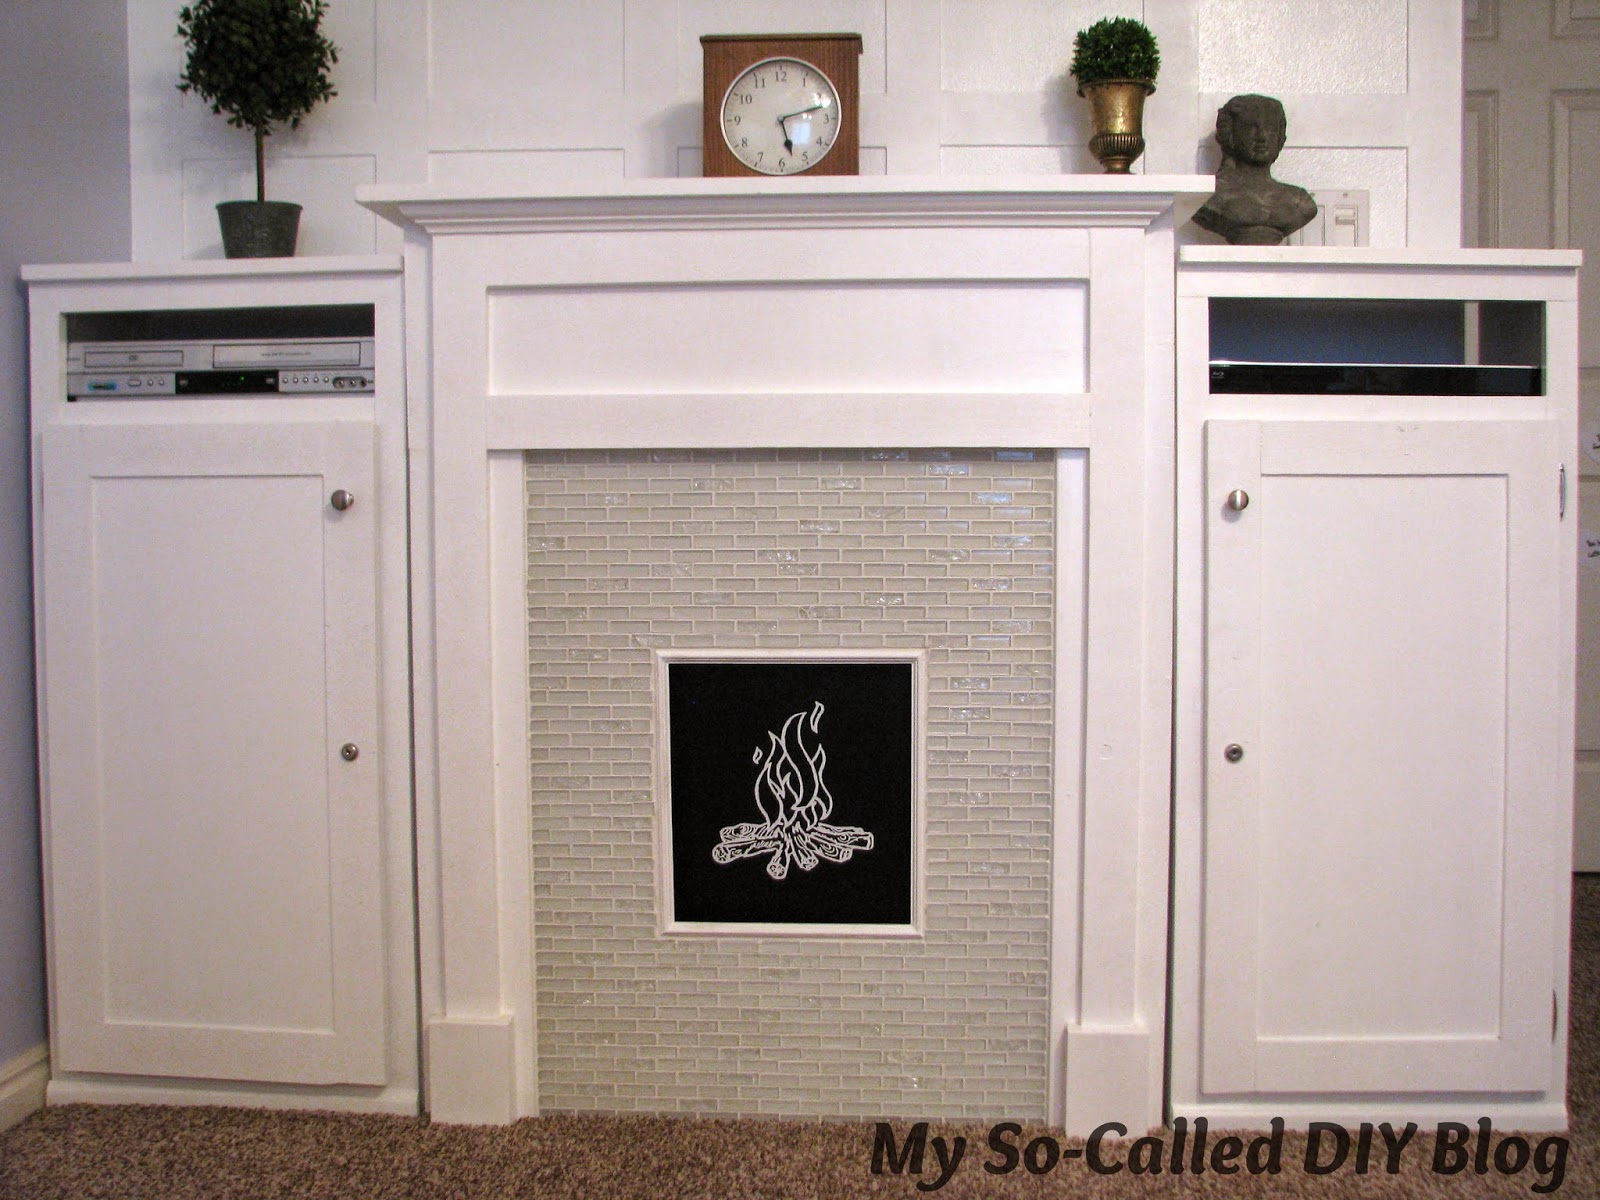 http://www.mysocalleddiyblog.com/2014/12/project-bonus-room-faux-fireplace-and.html